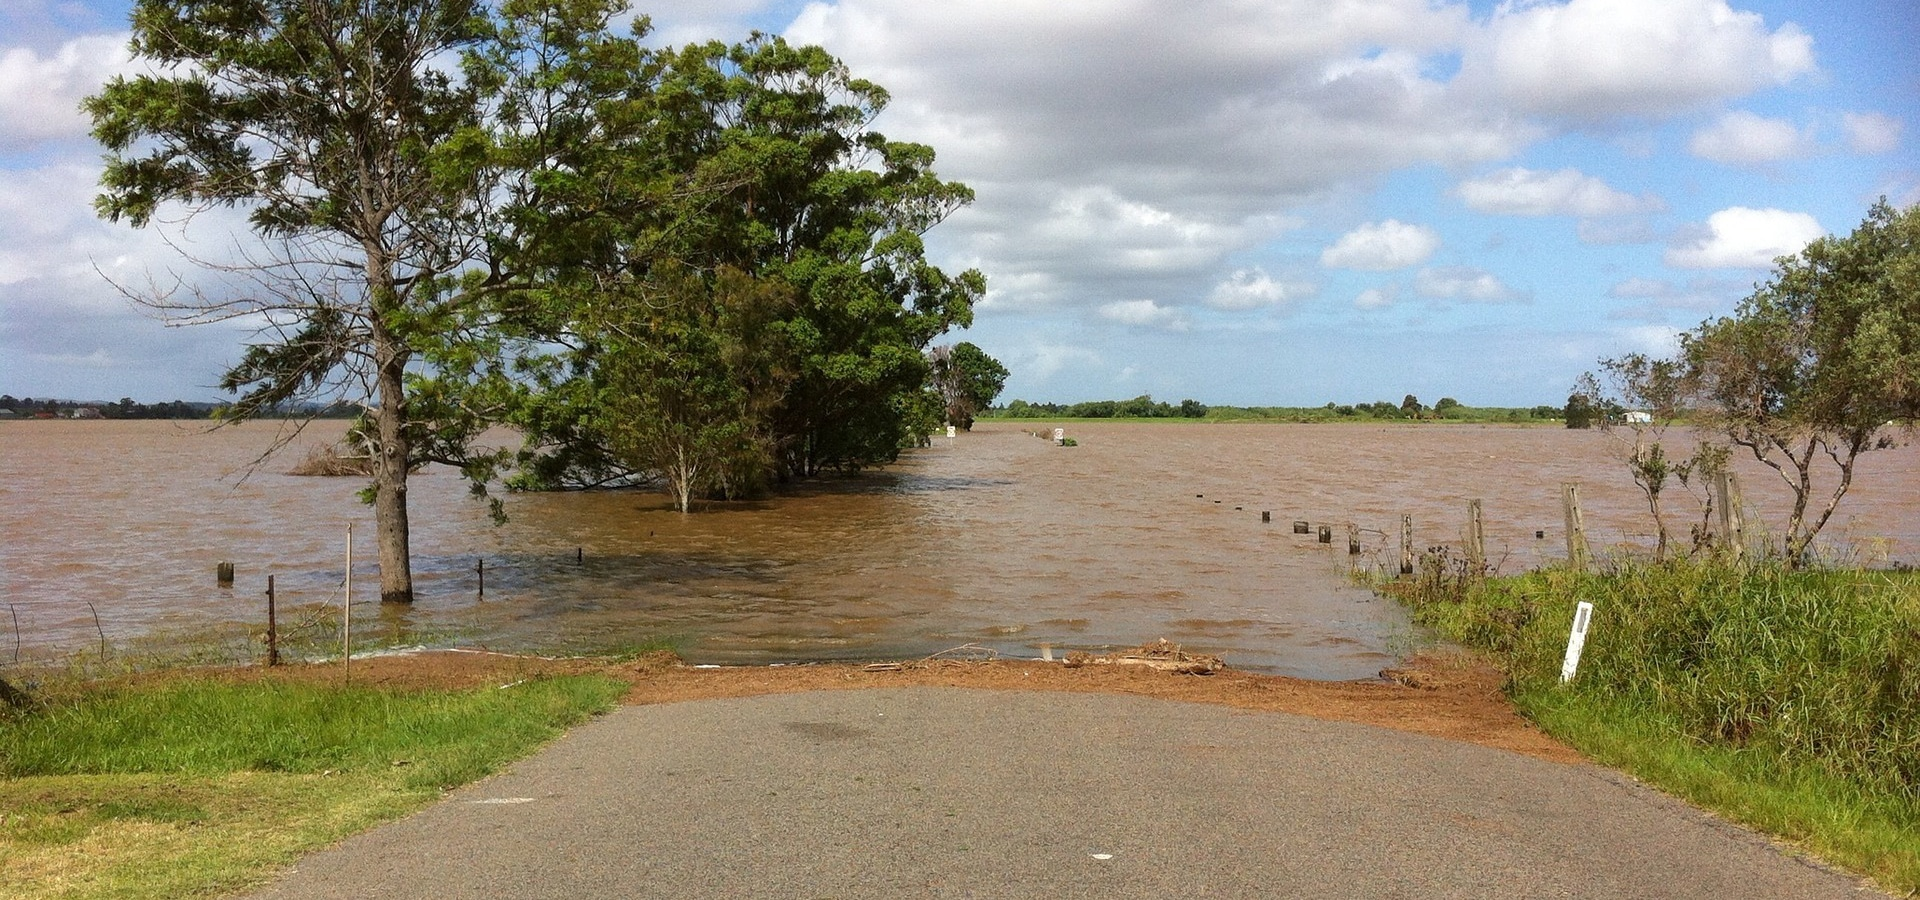 impassible flooded road